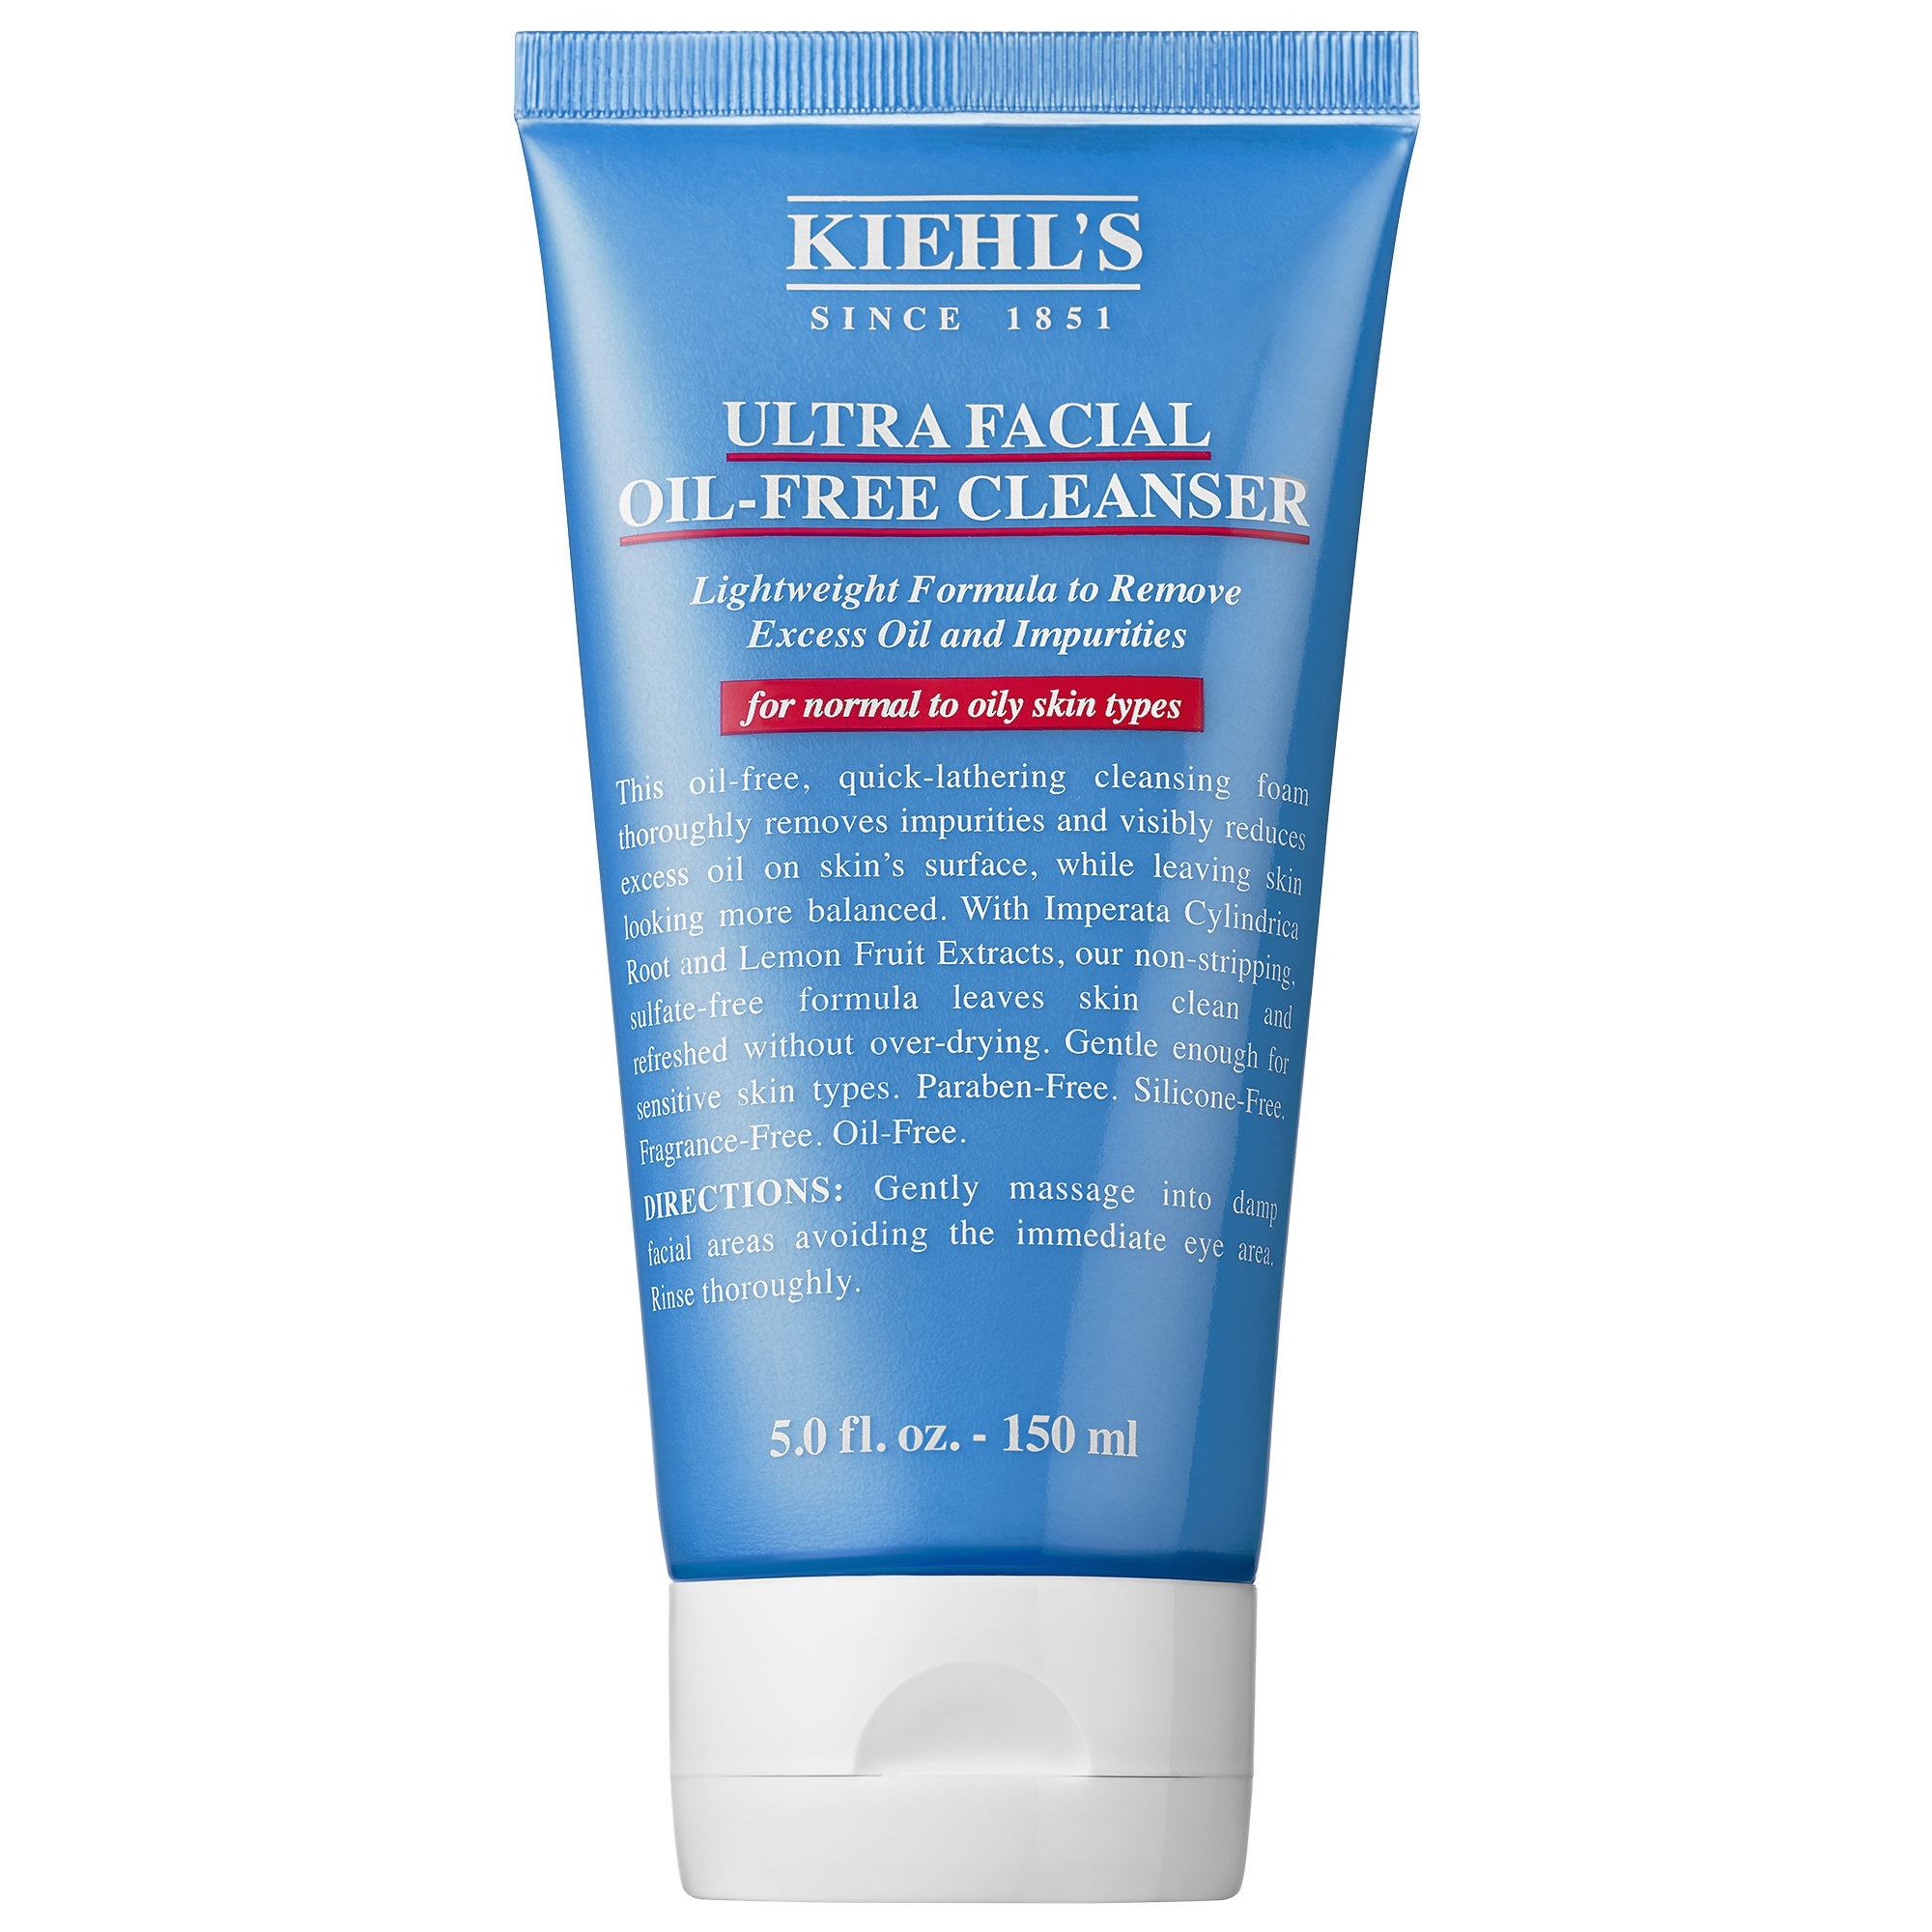 Kiehl's Since 1851 Ultra Facial Oil-Free Cleanser